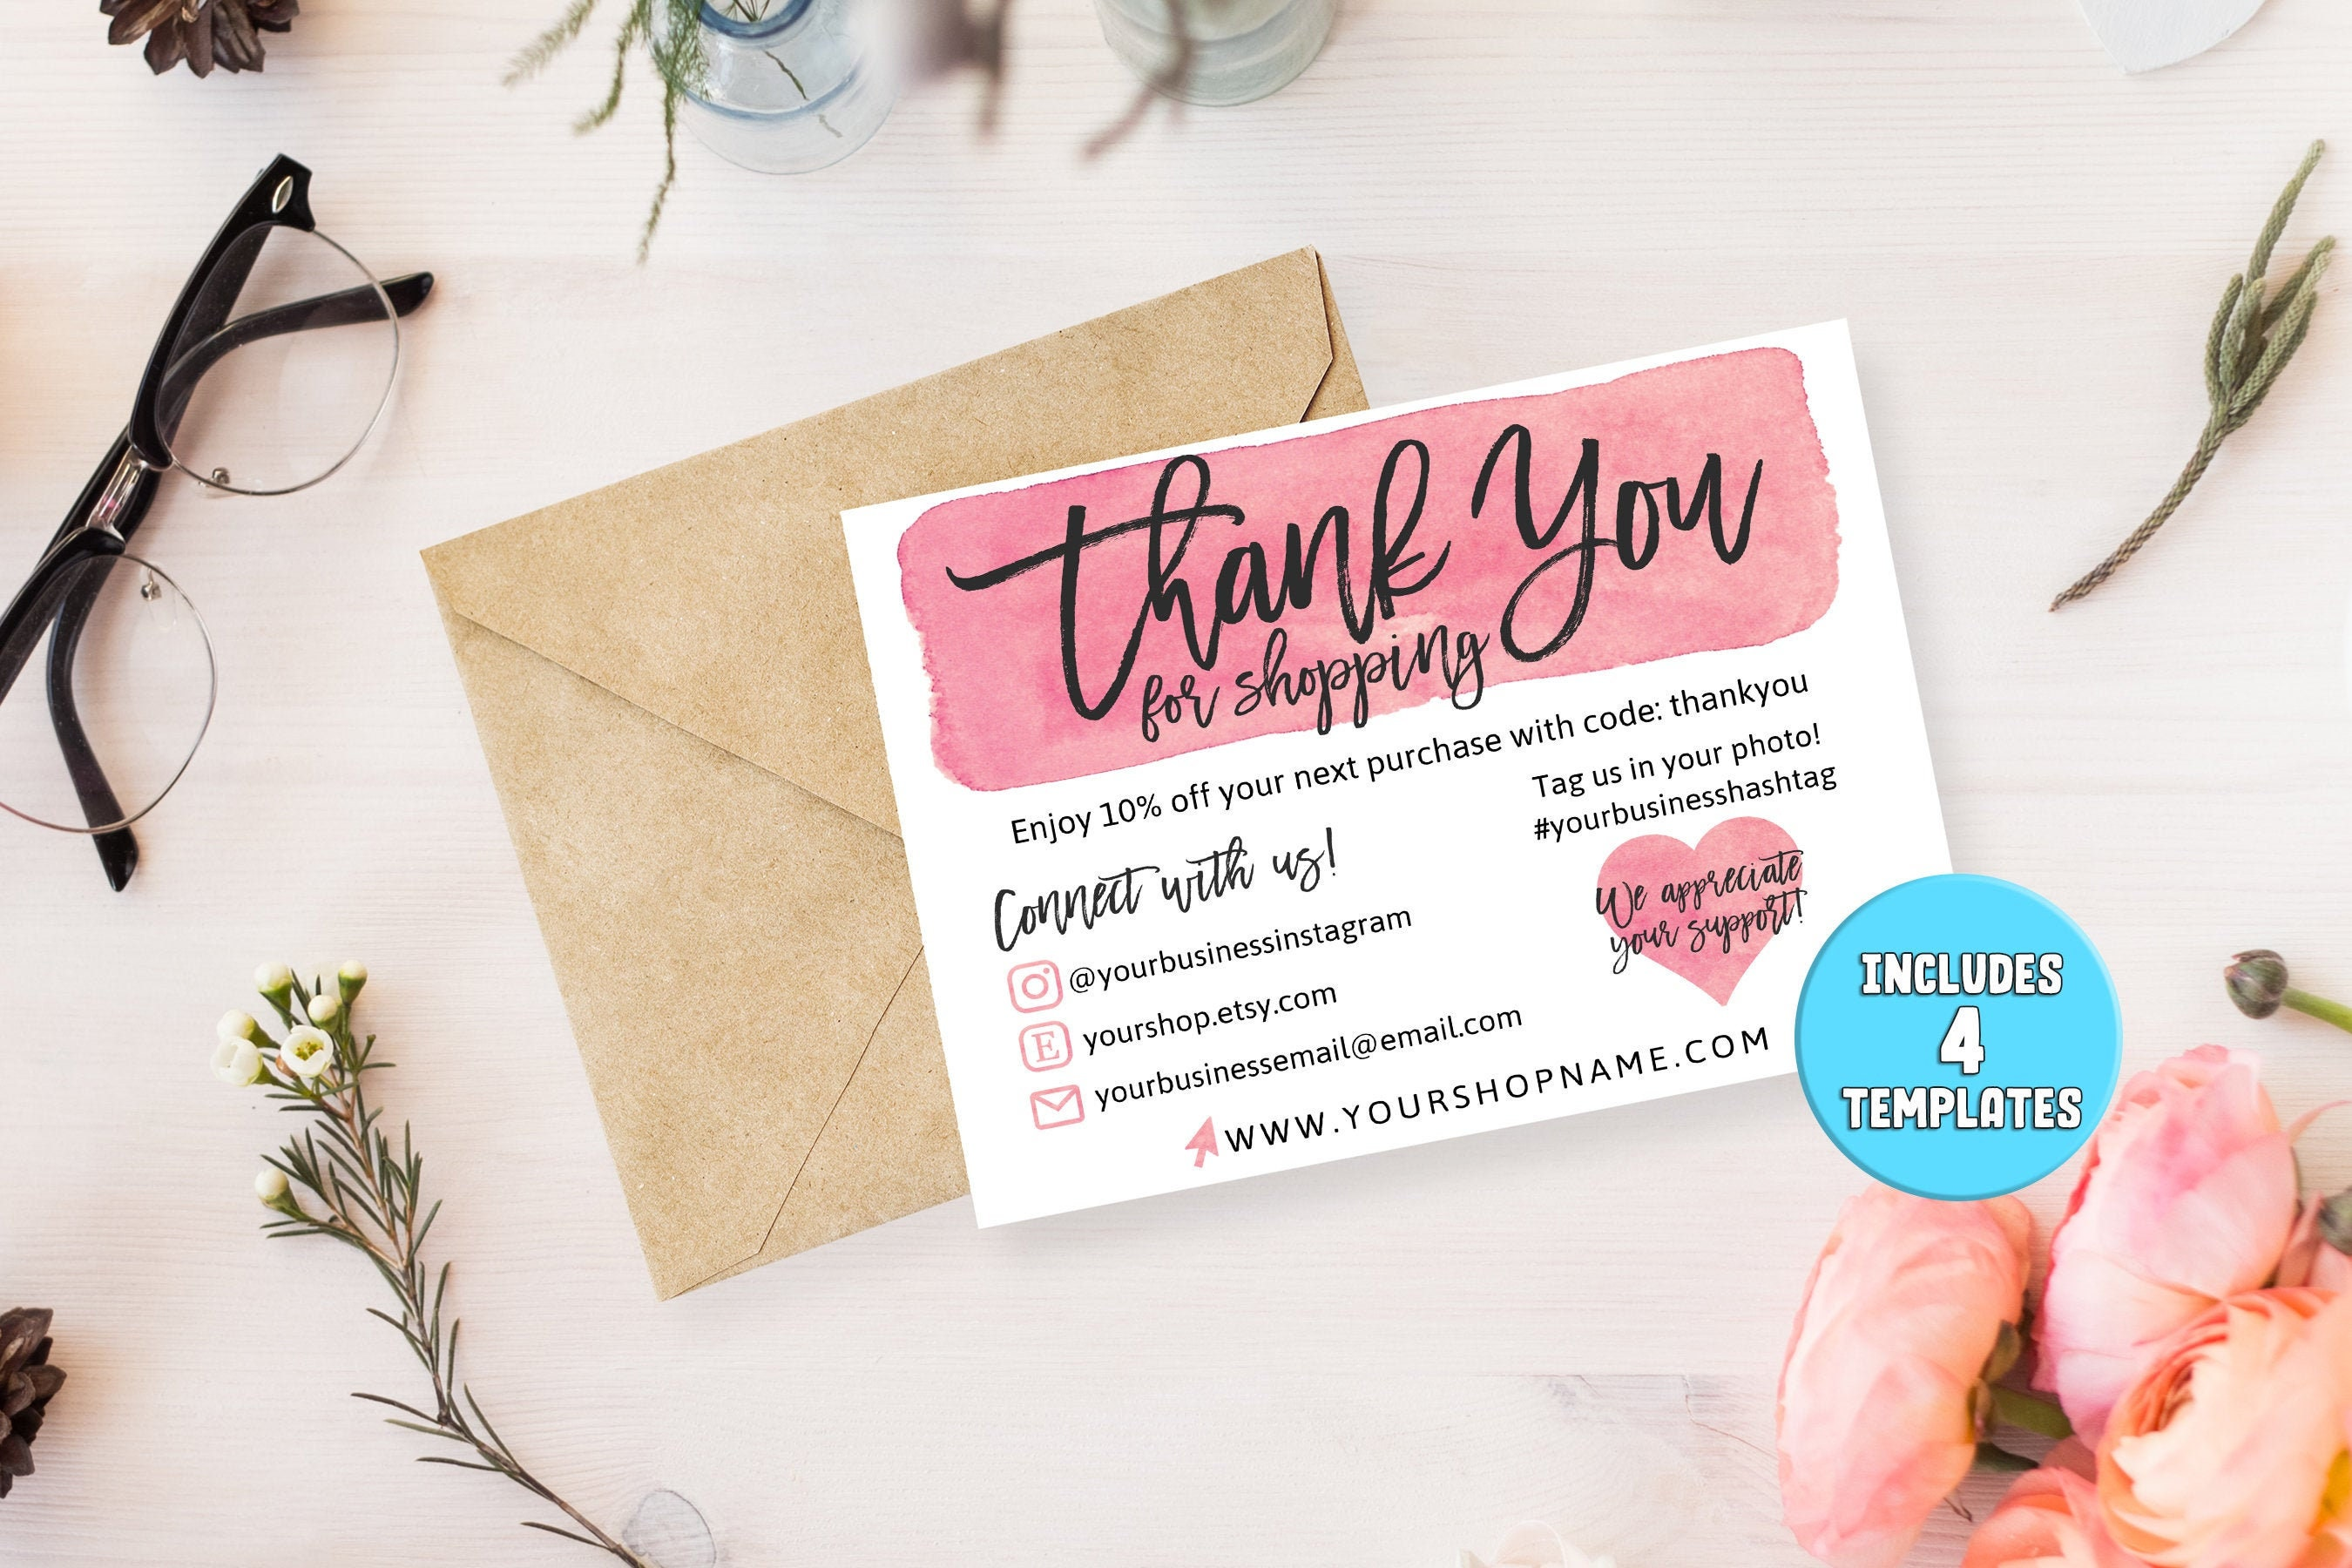 DIY Printable Thank You Card for Your Order   Small Business Card   Add  logo, Social Media Icons   Instagram, Poshmark, Etsy, Website, Email